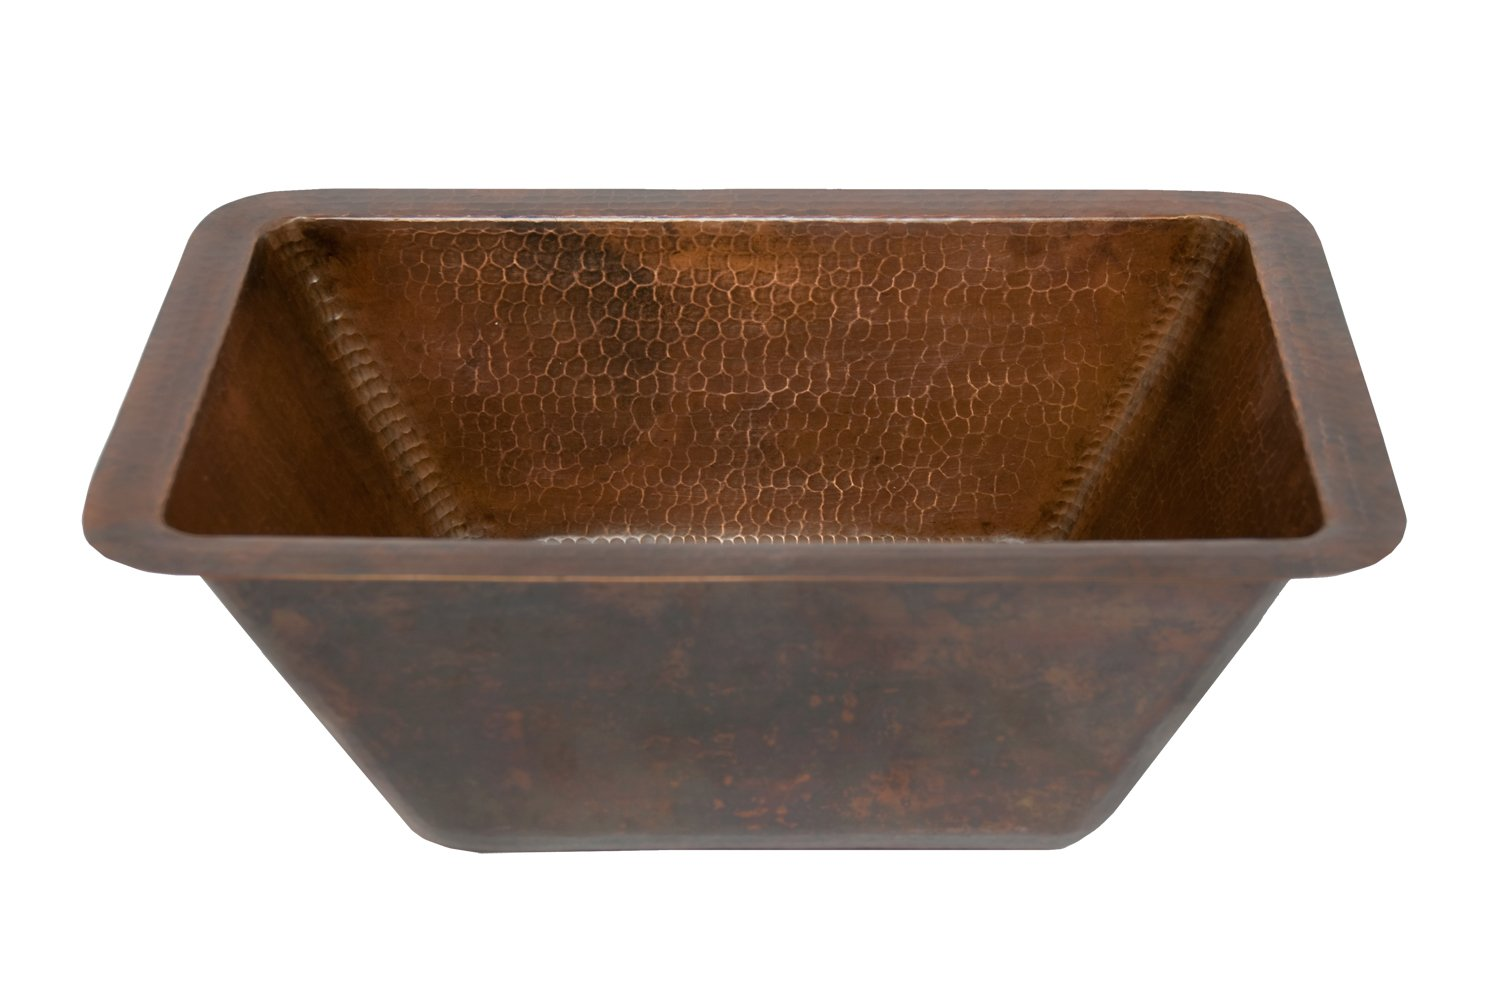 Premier Copper Products BRECDB2 Universal Rectangle Copper Bar Sink with 2-Inch Drain Size, Oil Rubbed Bronze by Premier Copper Products